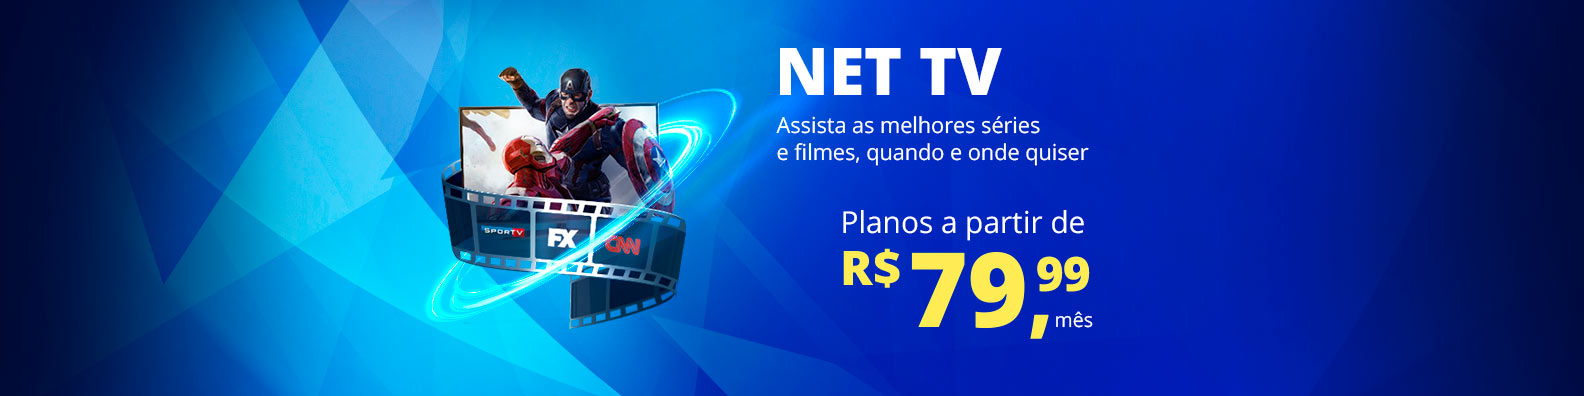 net top hd max mais de 130 canais e 60 hd mais gravador digital por 179 no combo